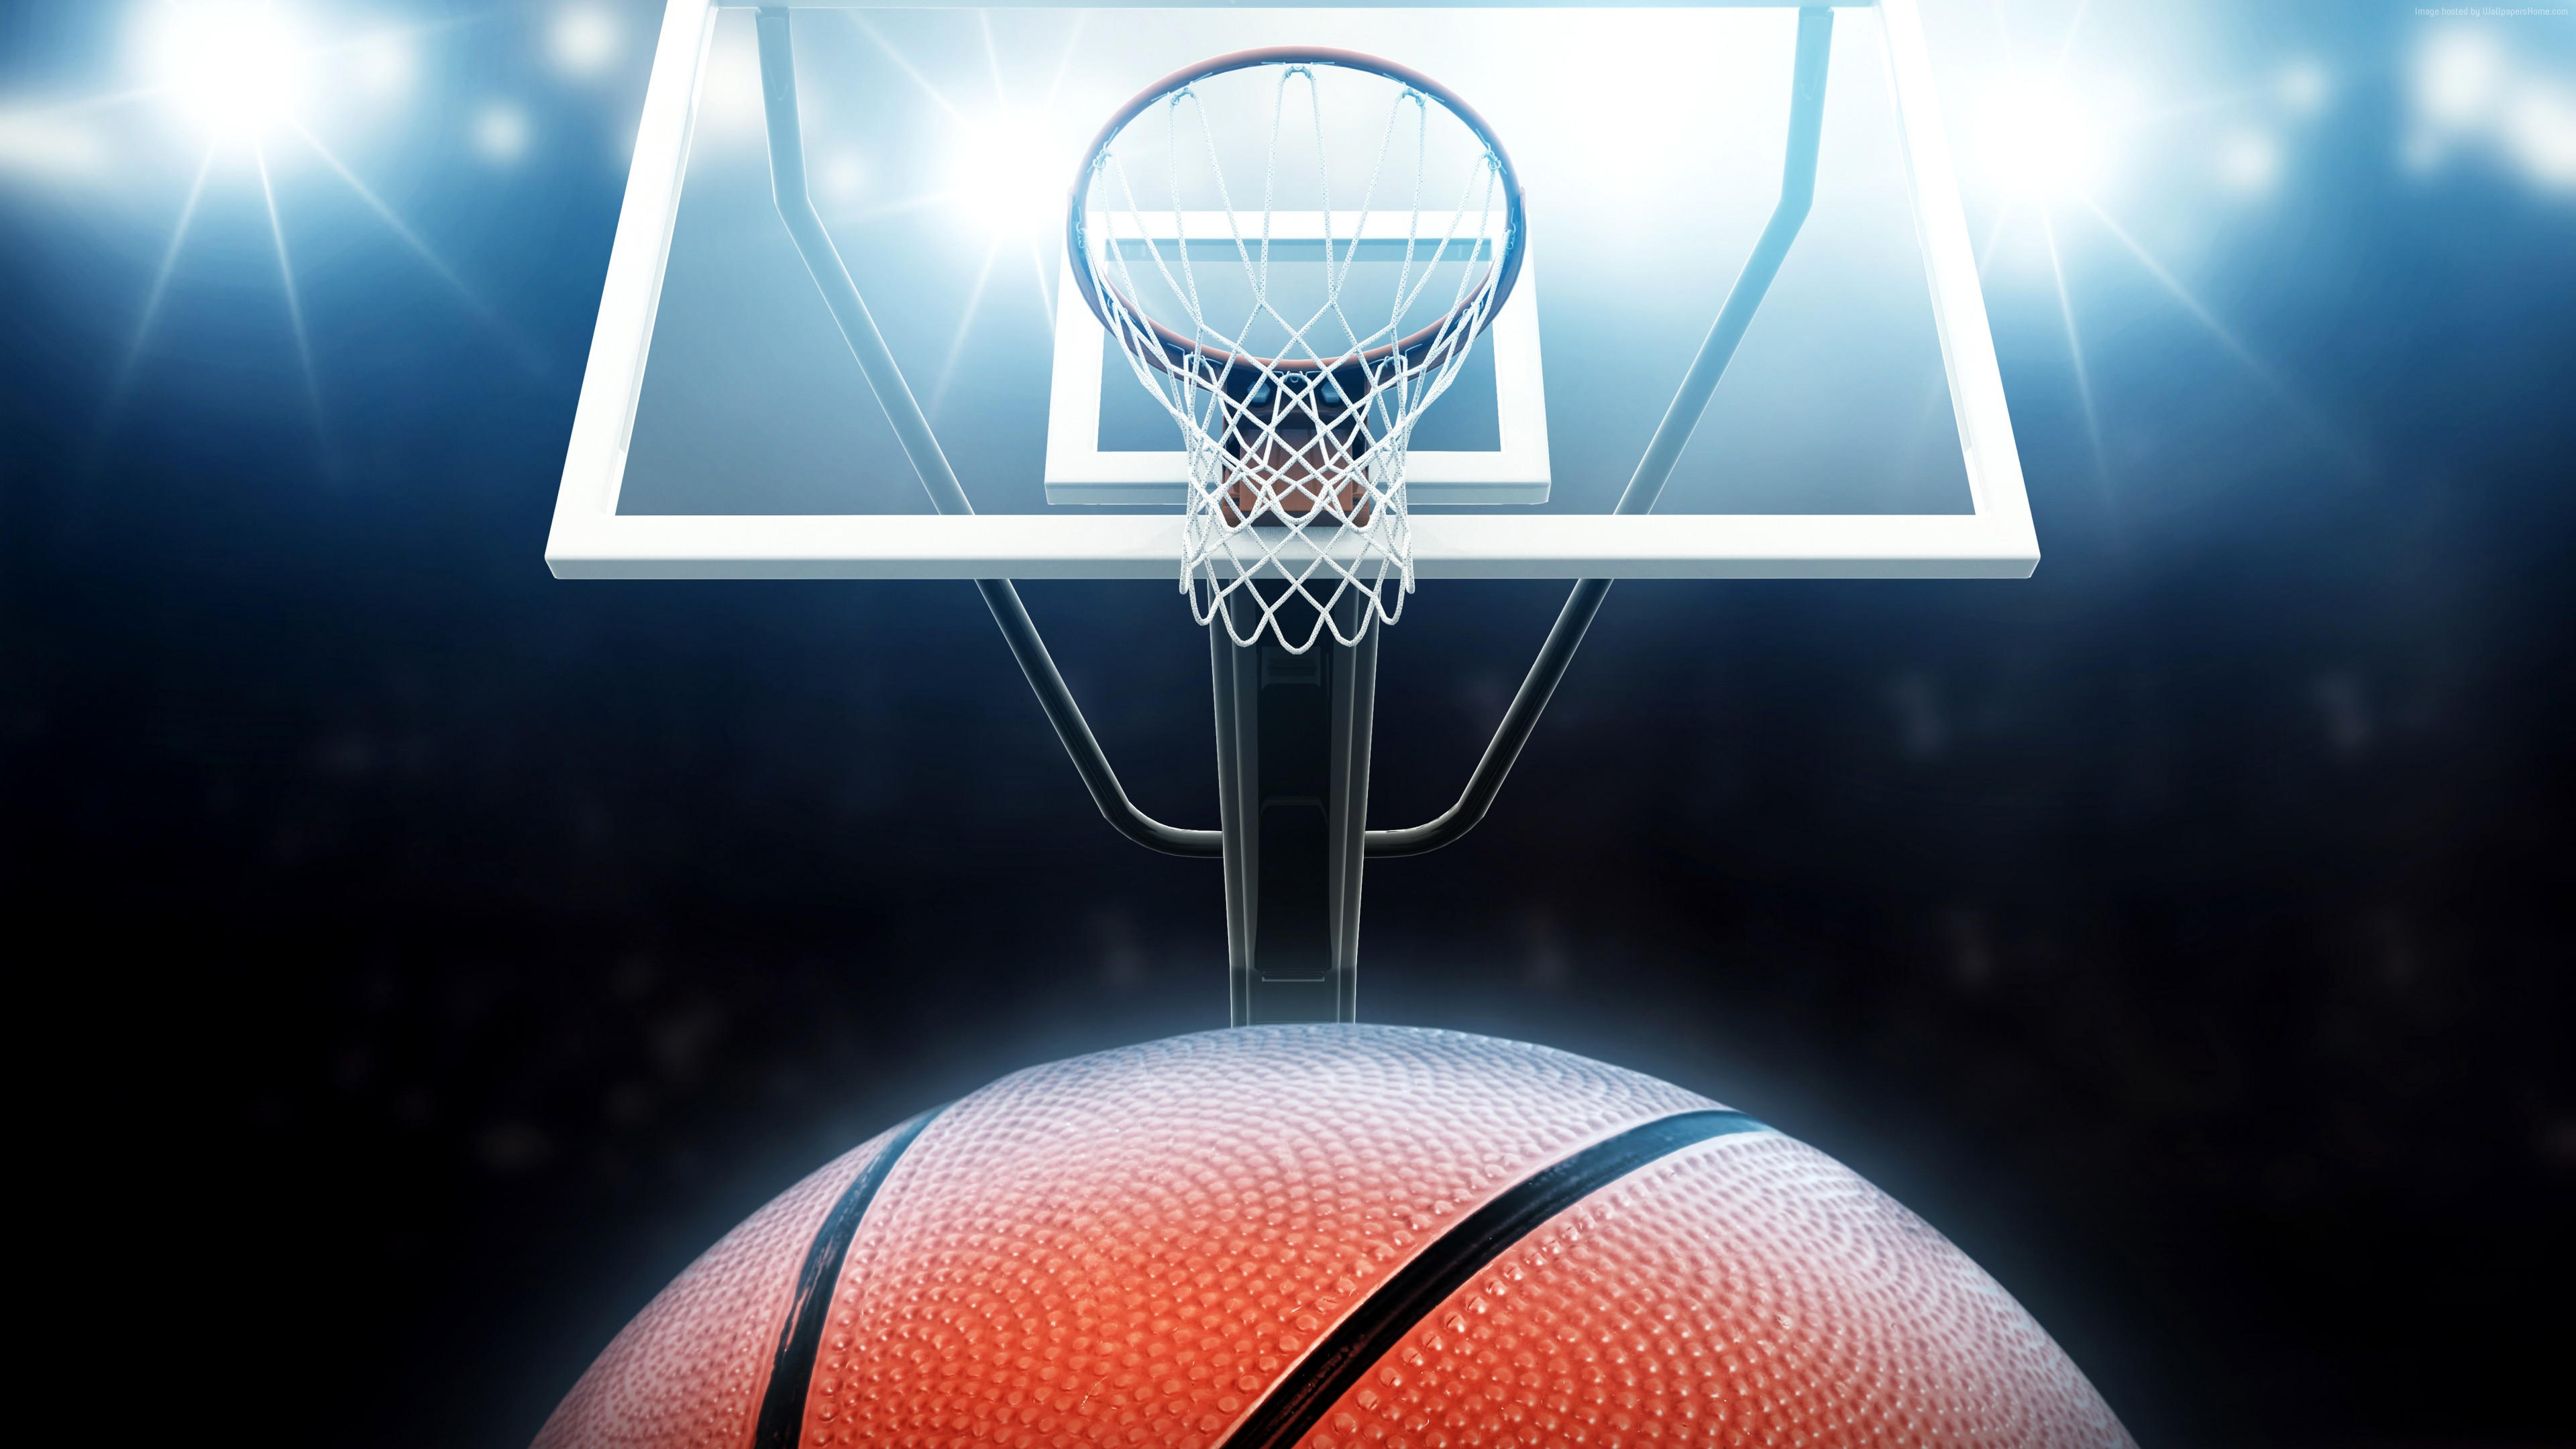 Basketball 4k Hd Sports 4k Wallpapers Images